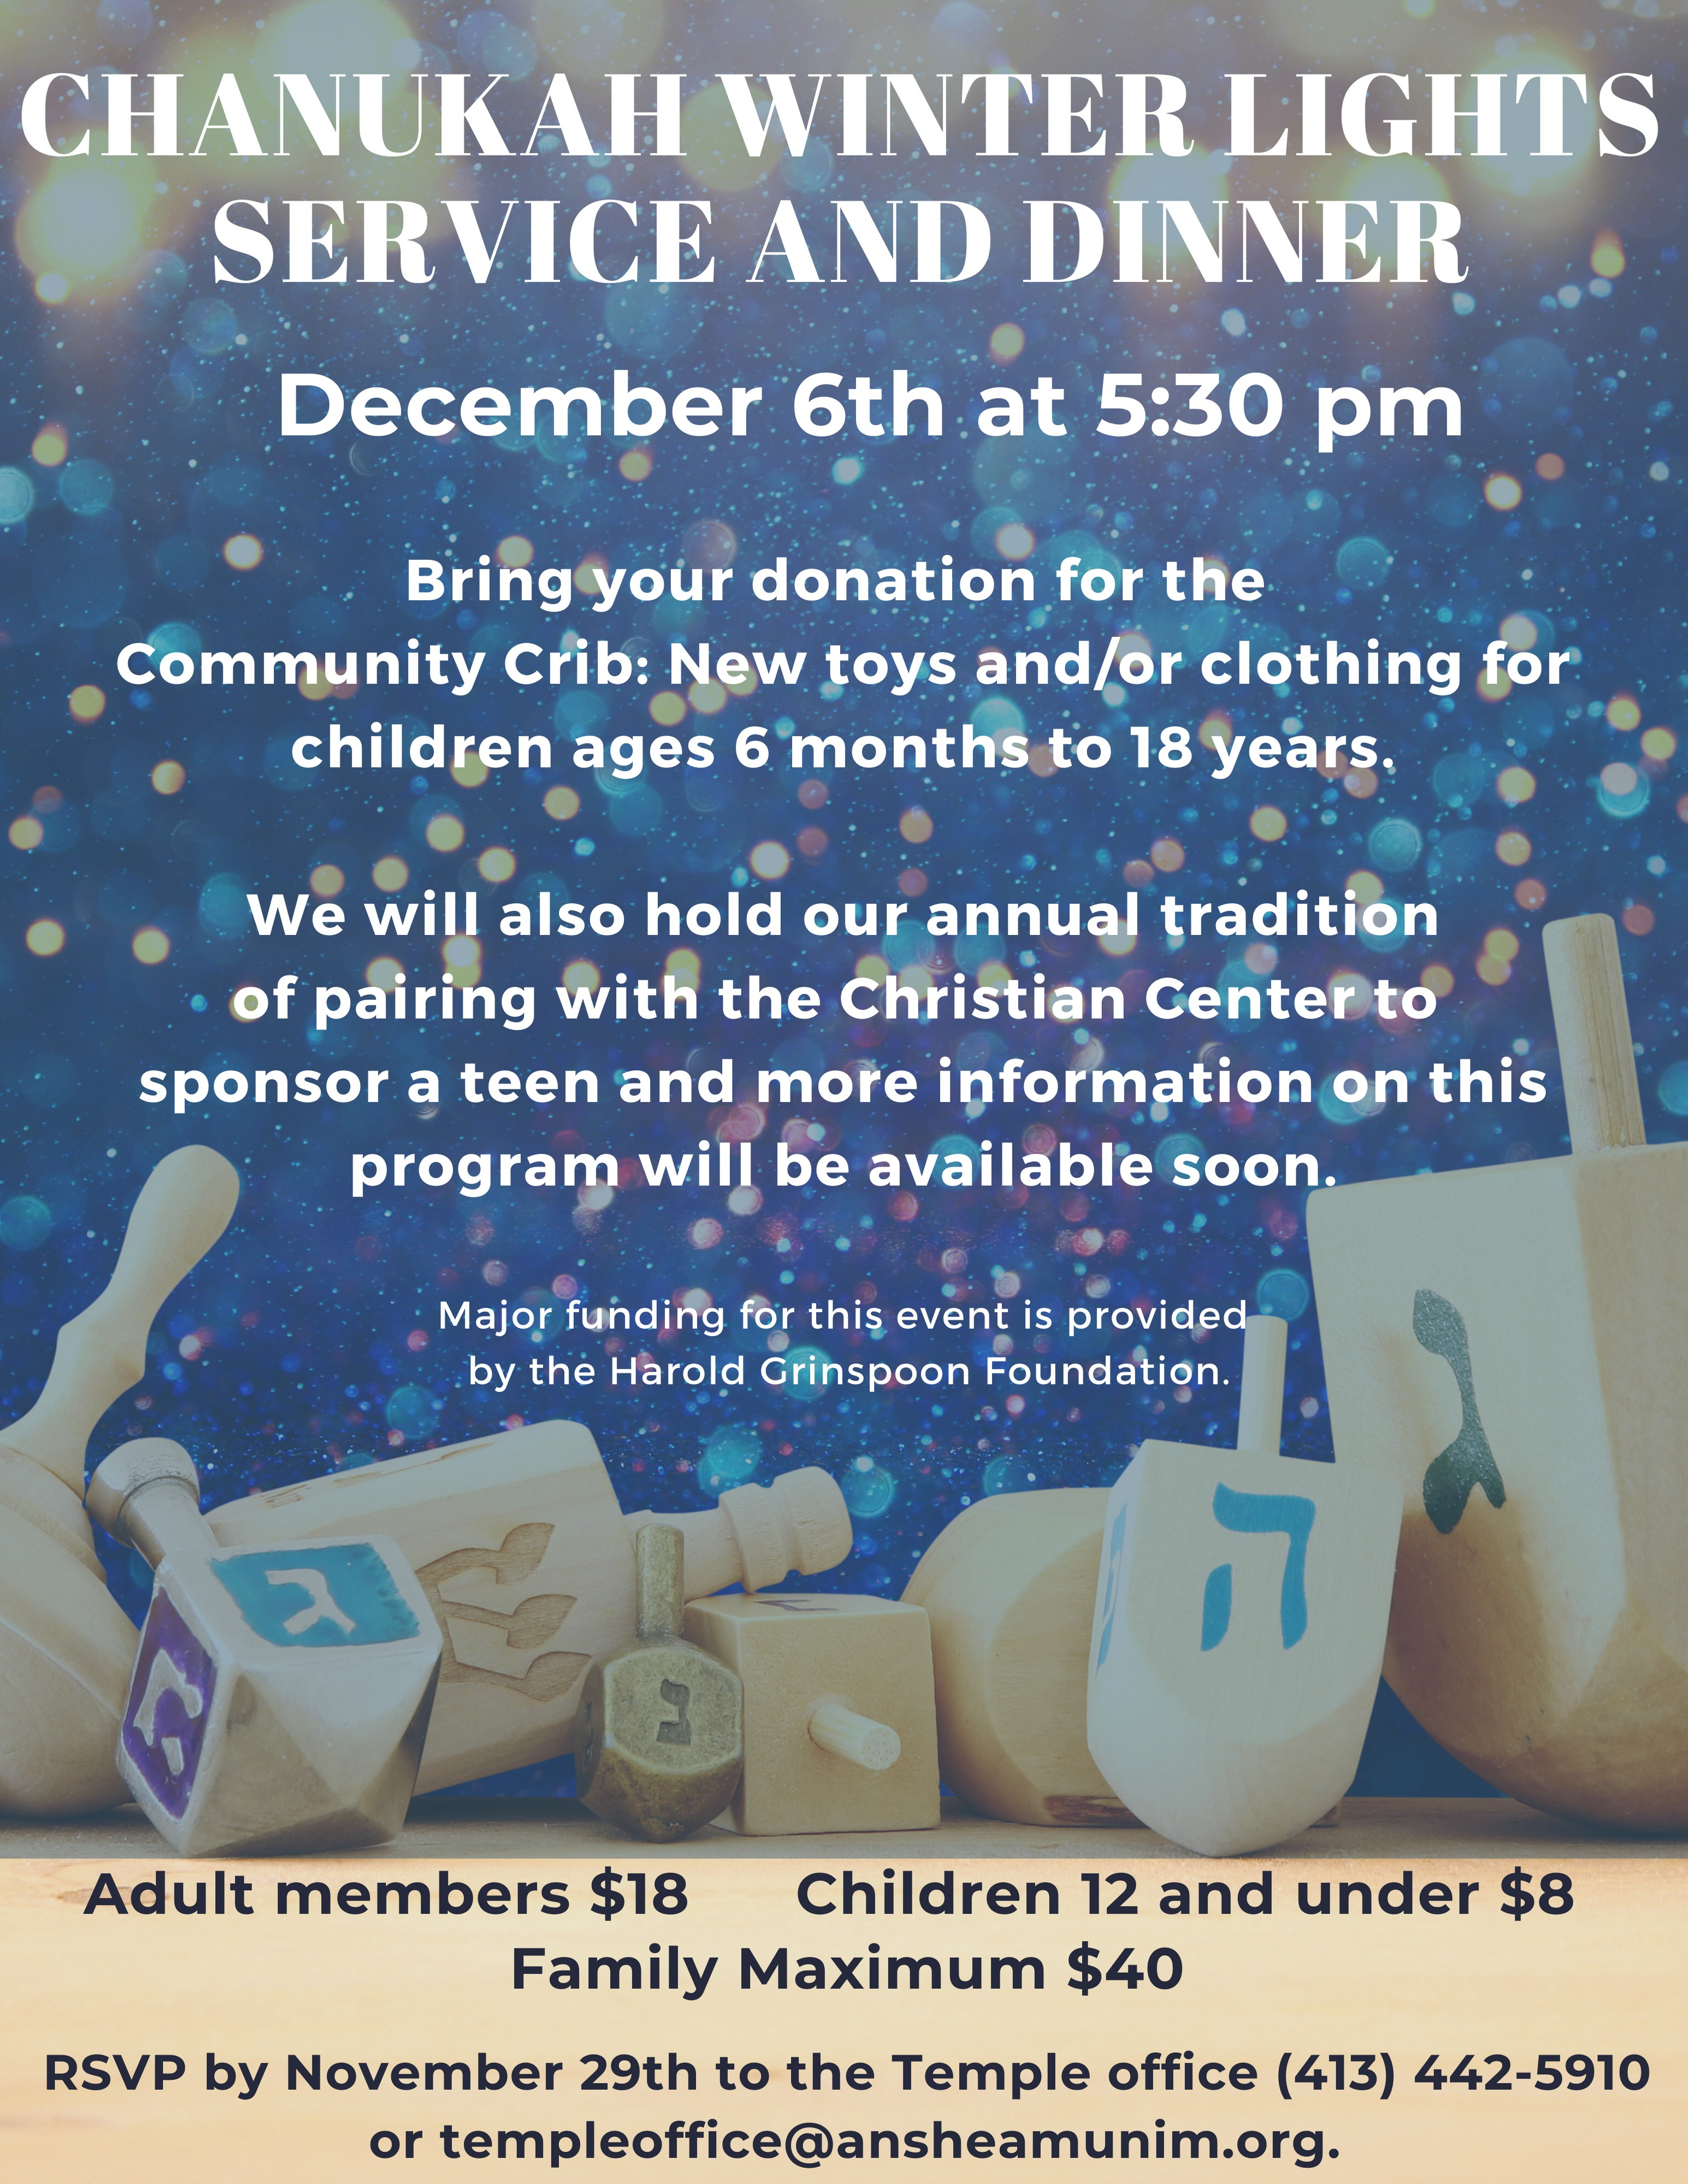 Banner Image for Chanukah Winter Lights Service and Dinner